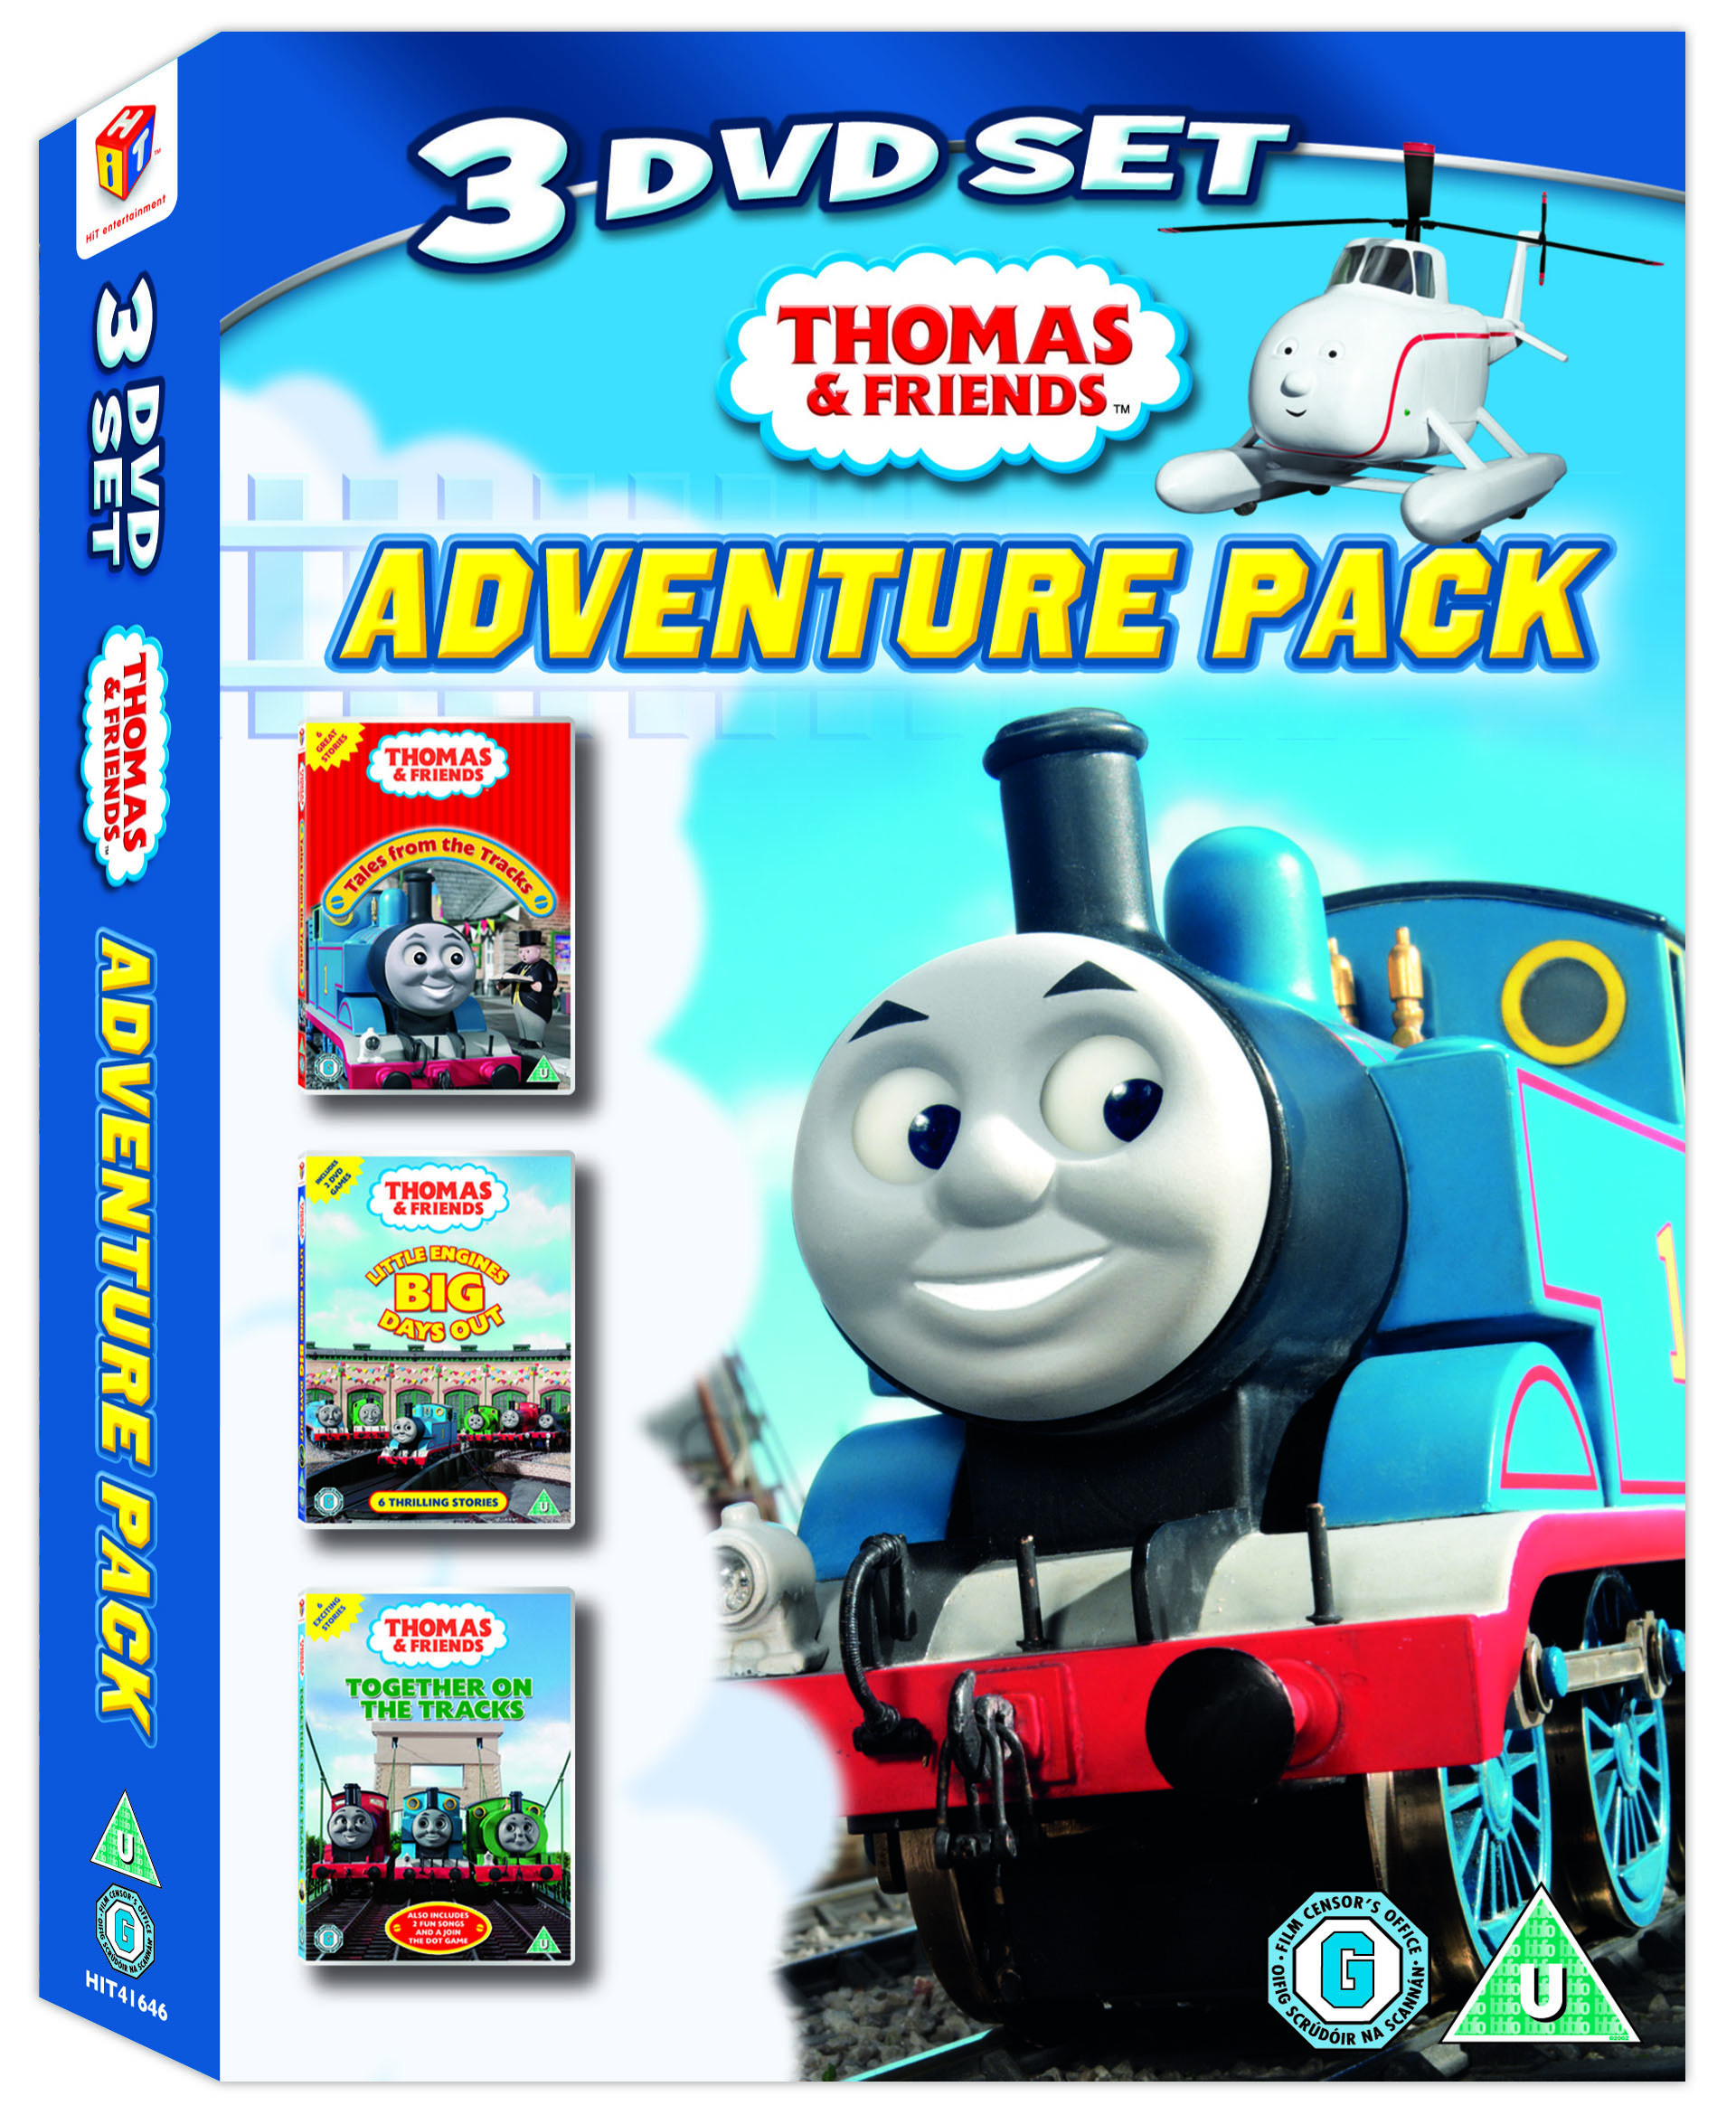 thomas and friends adventure pack 3 discs dvd c u. Black Bedroom Furniture Sets. Home Design Ideas